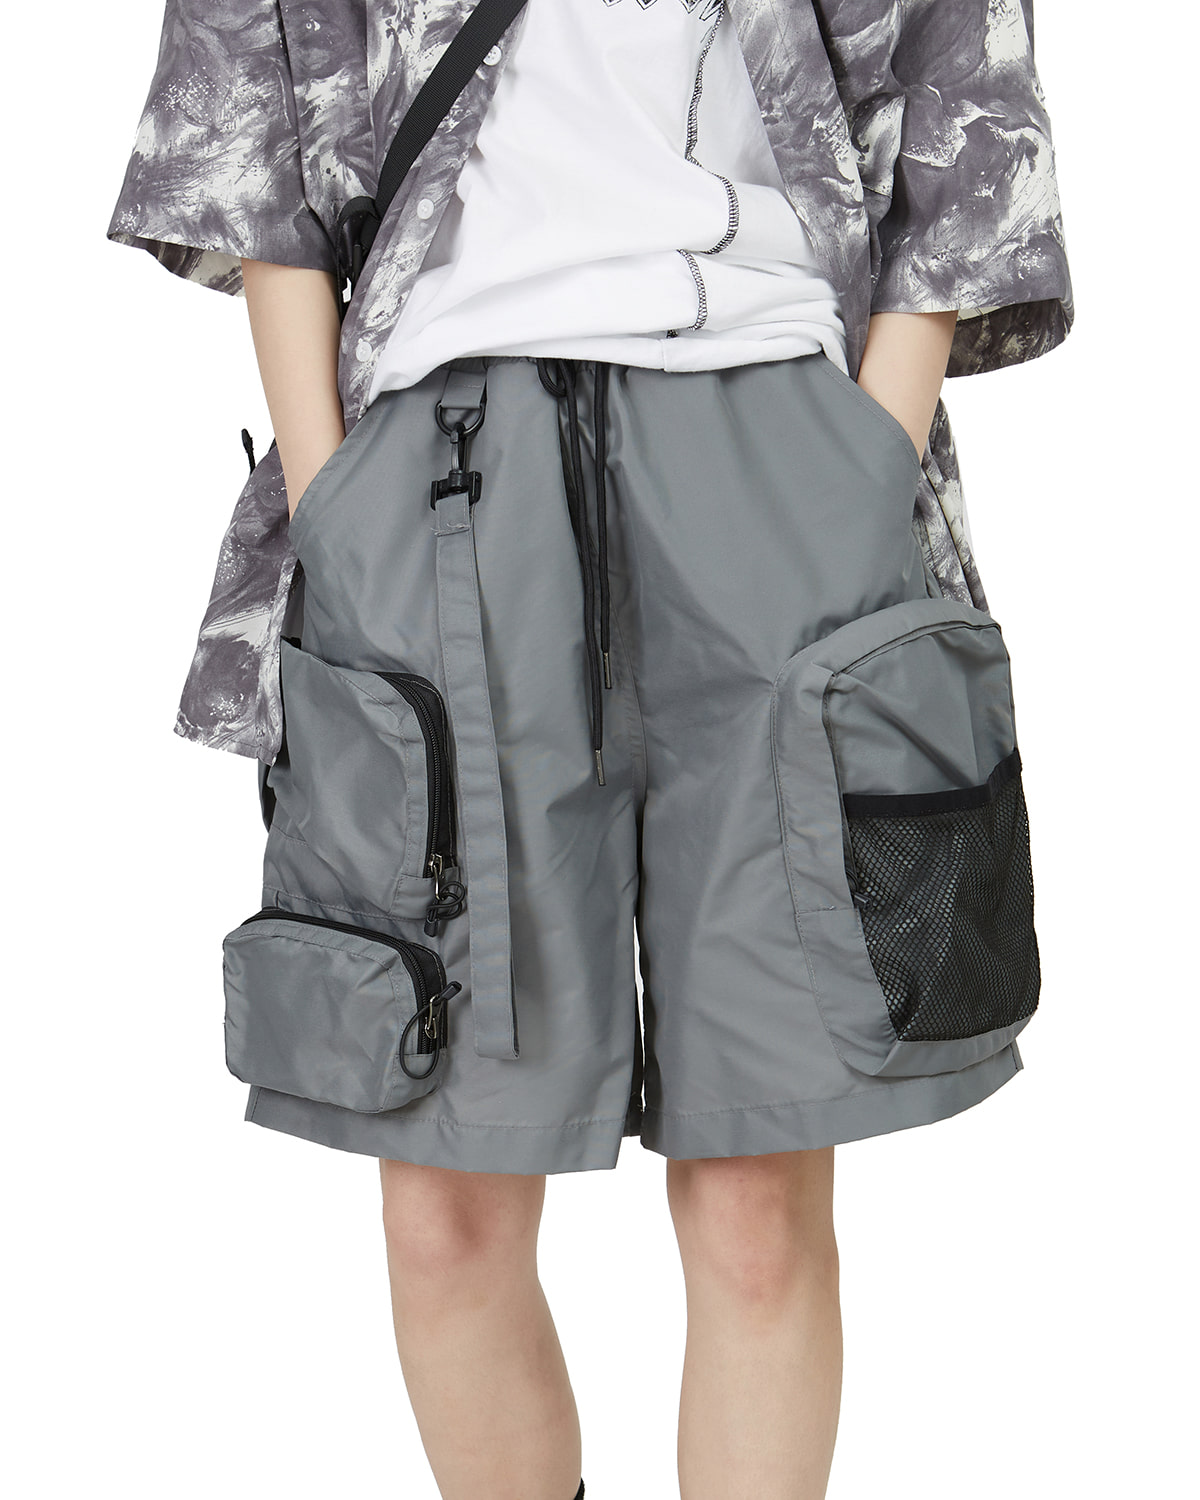 raucohouse-UTILITY MULTI POCKET SHORTS - RAUCO HOUSE♡韓國男裝褲子